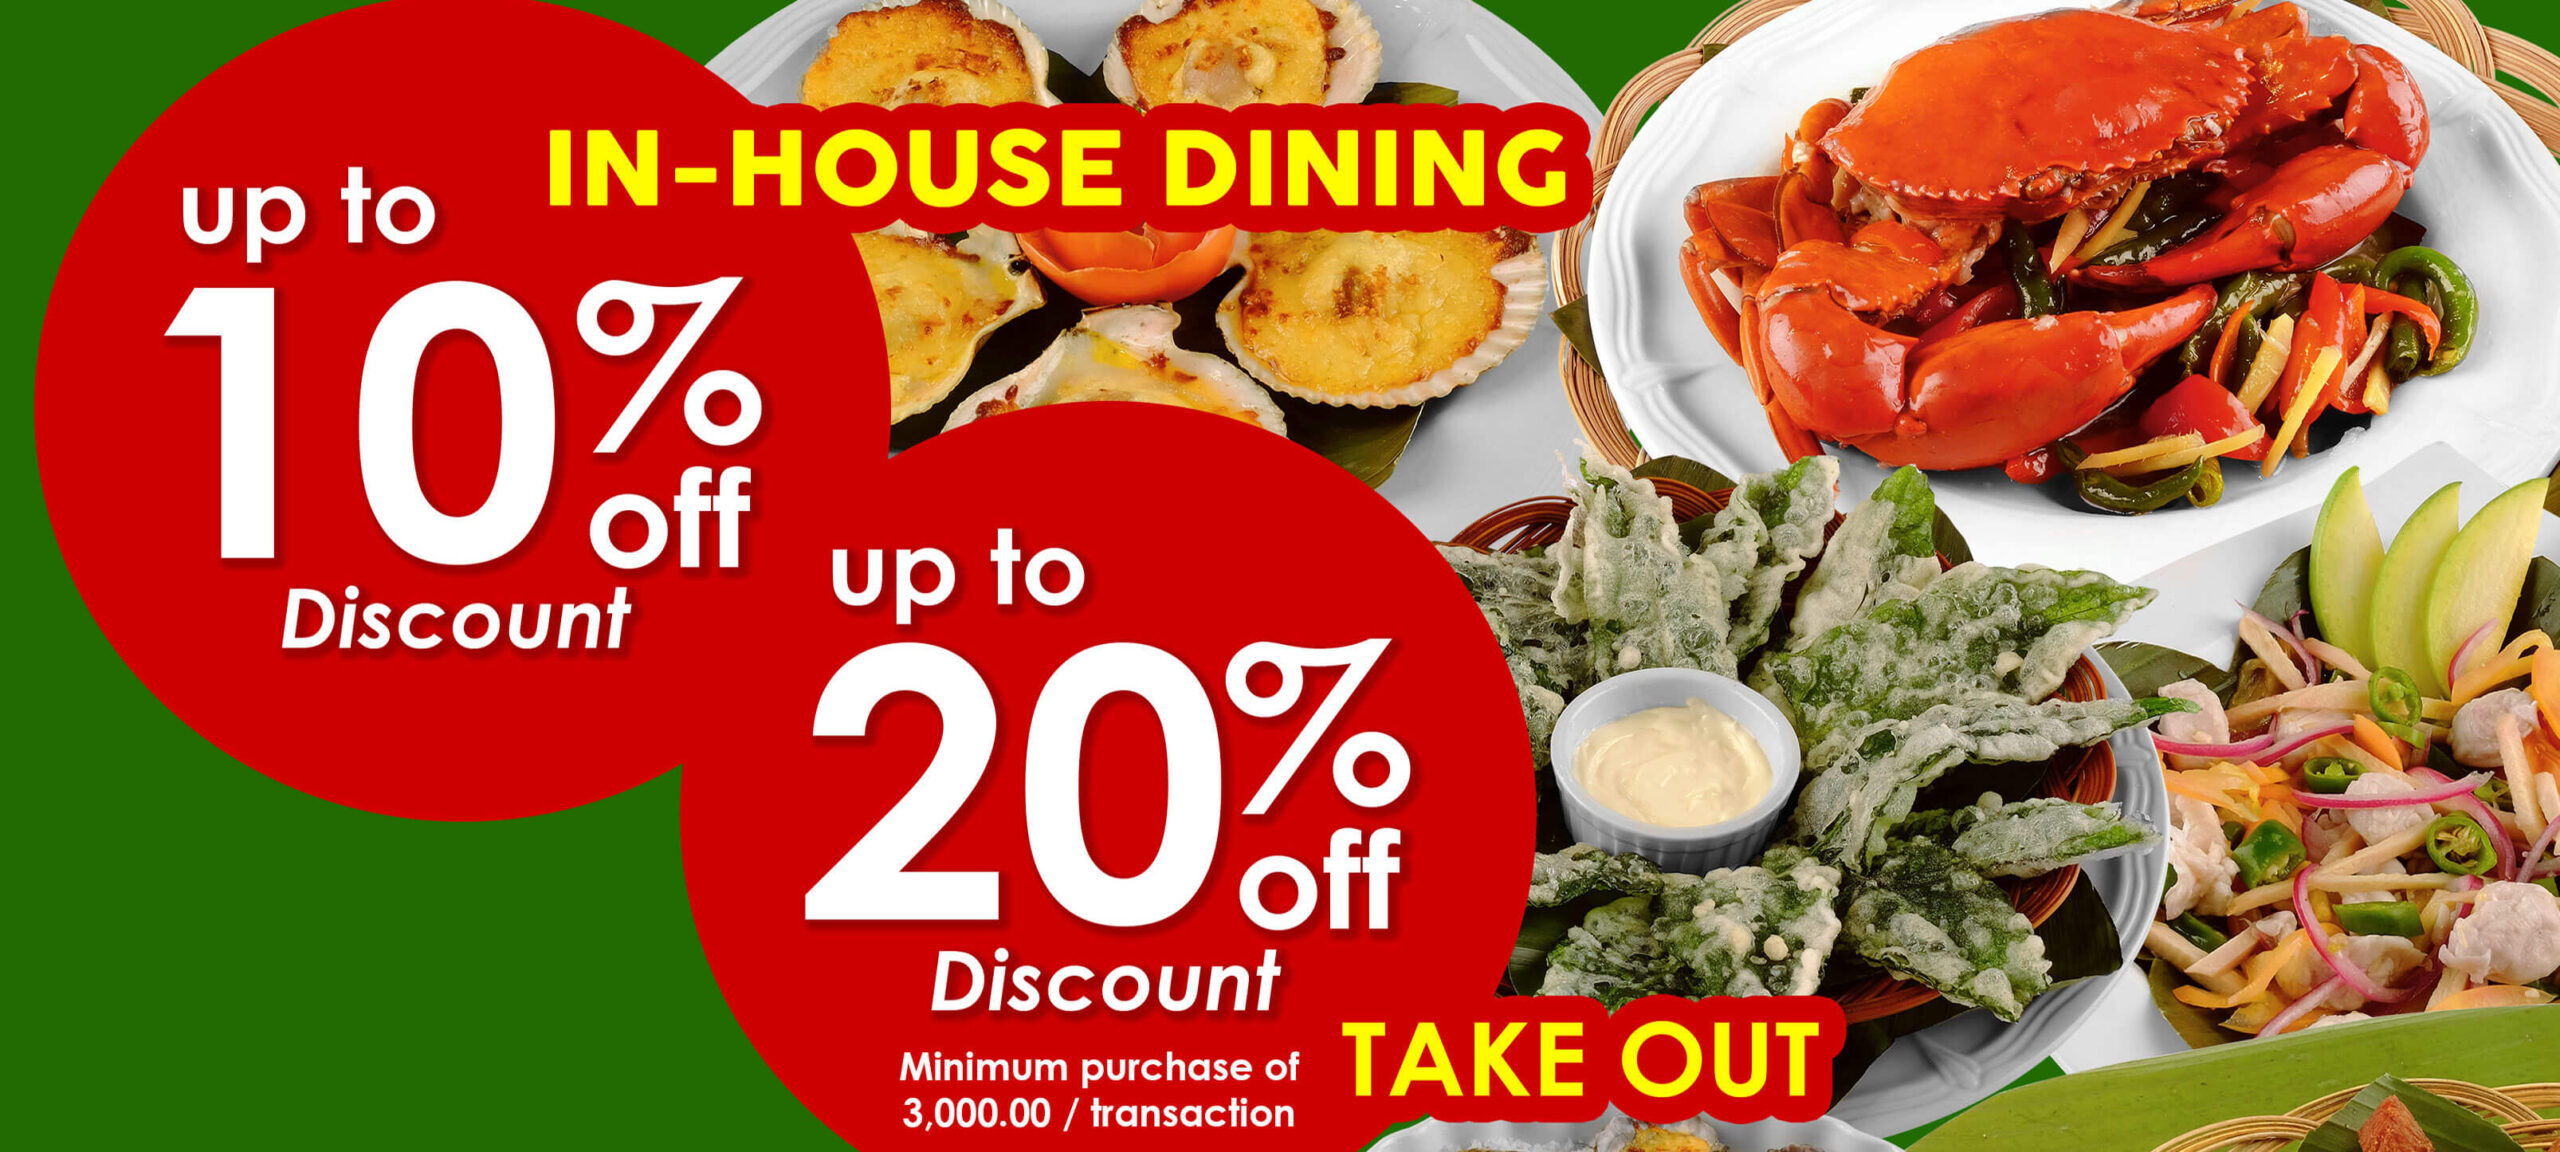 Lighthouse Restaurant offers discount on in-house dining, take out